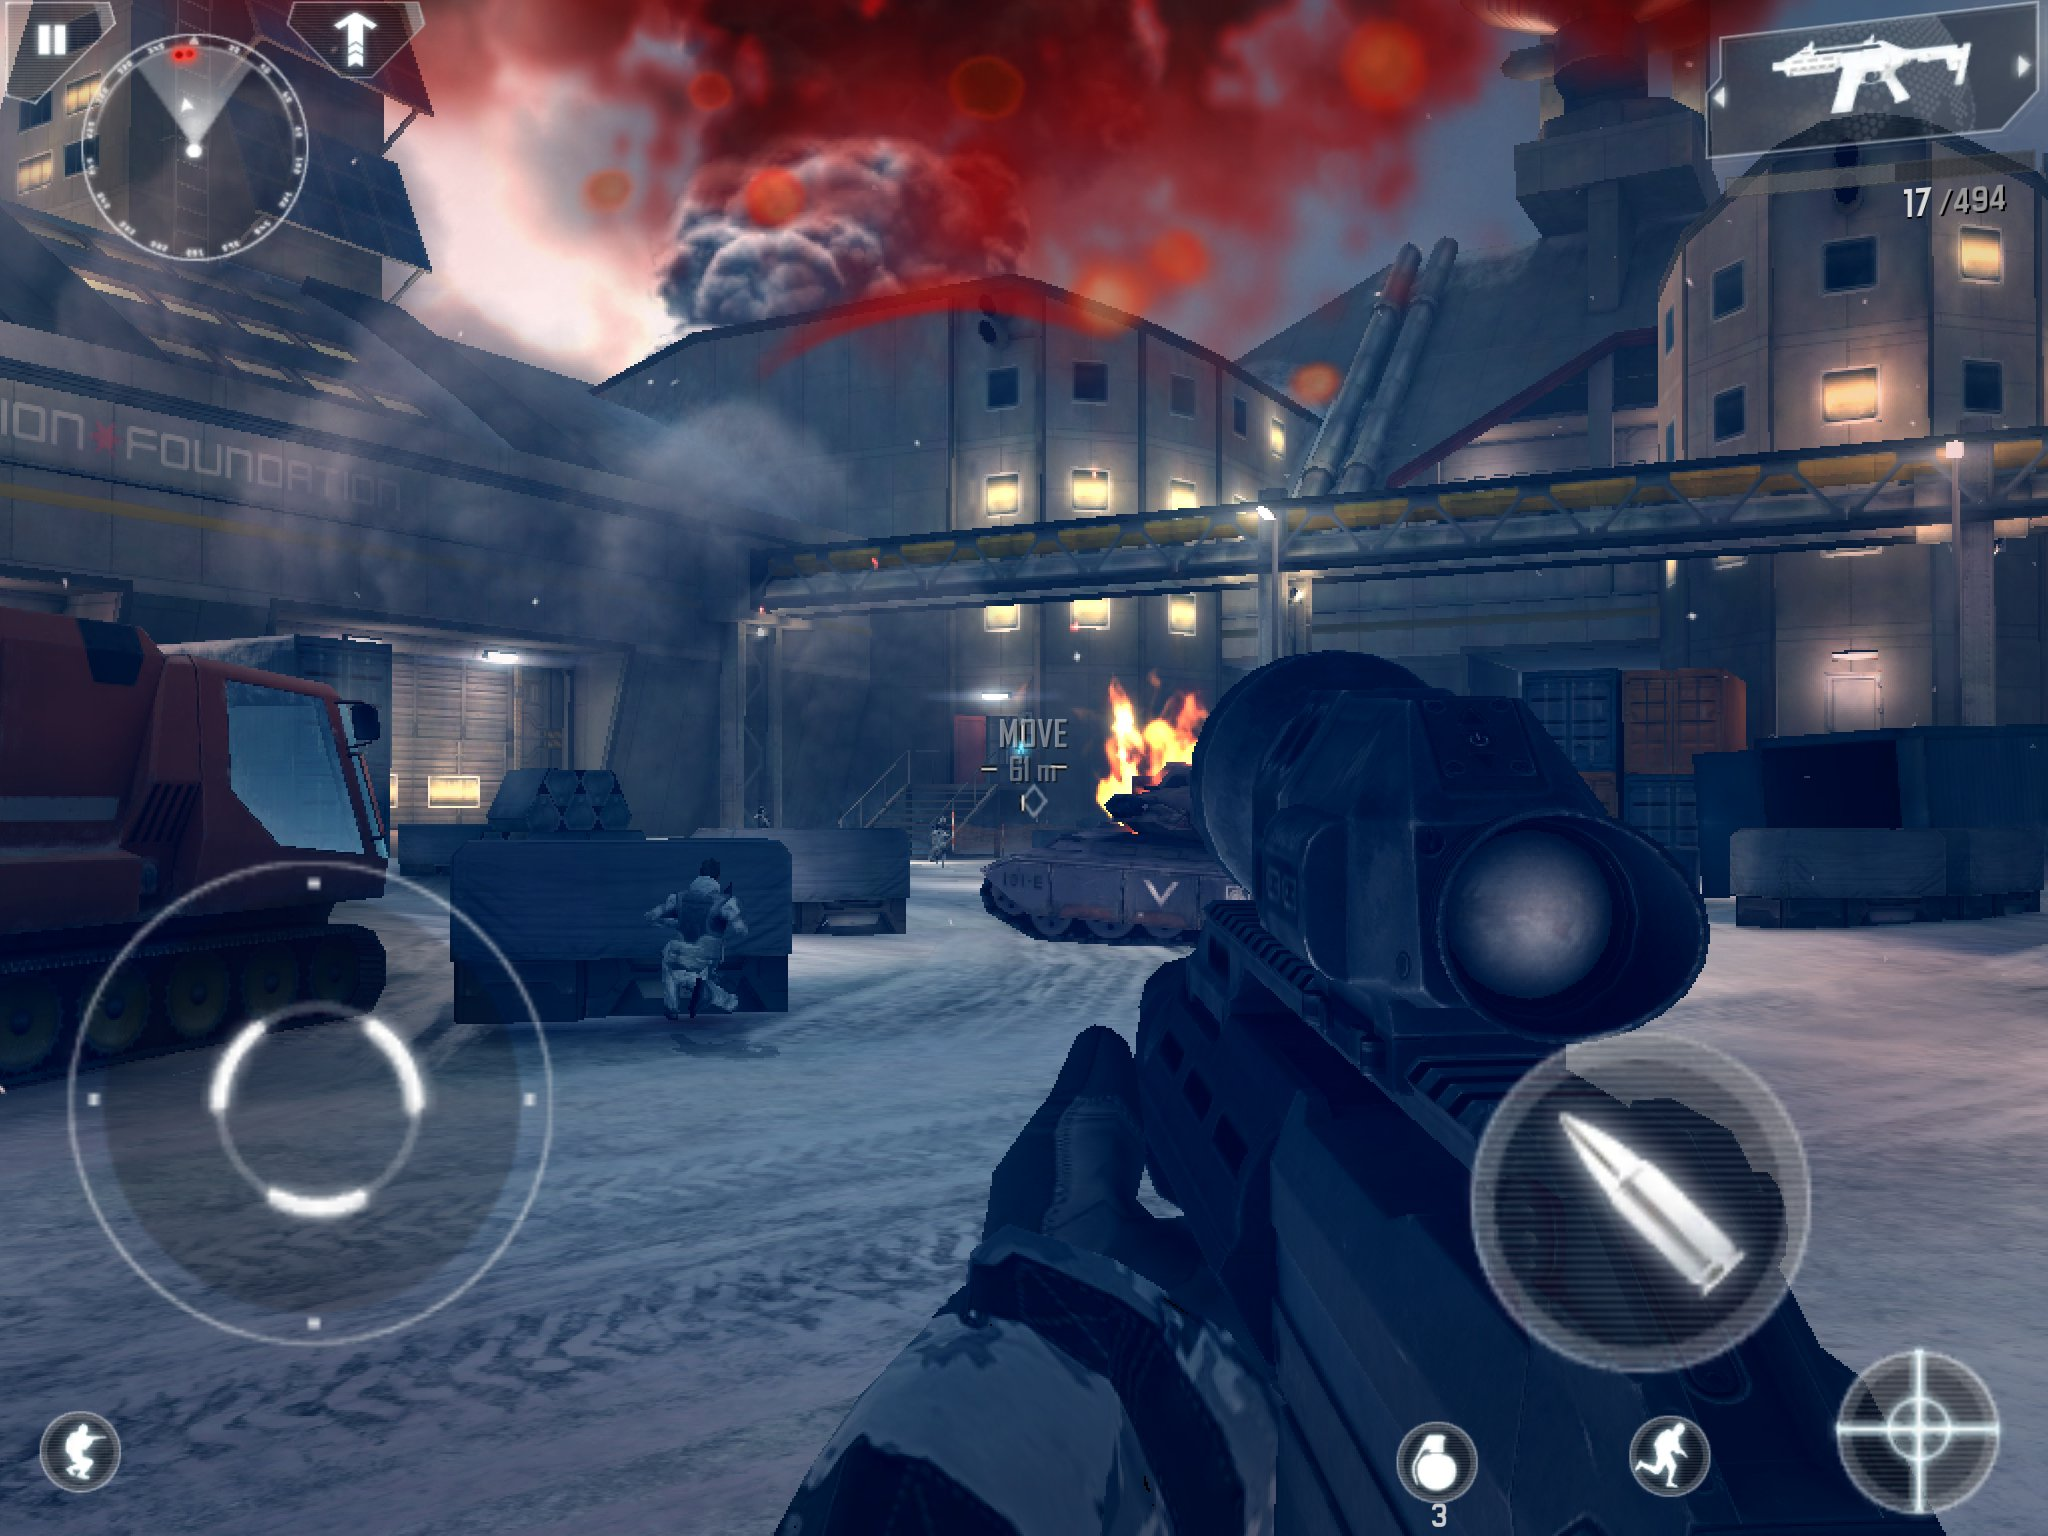 [Update] Modern Combat 4: Zero Hour storms Google Play, suffers download issues